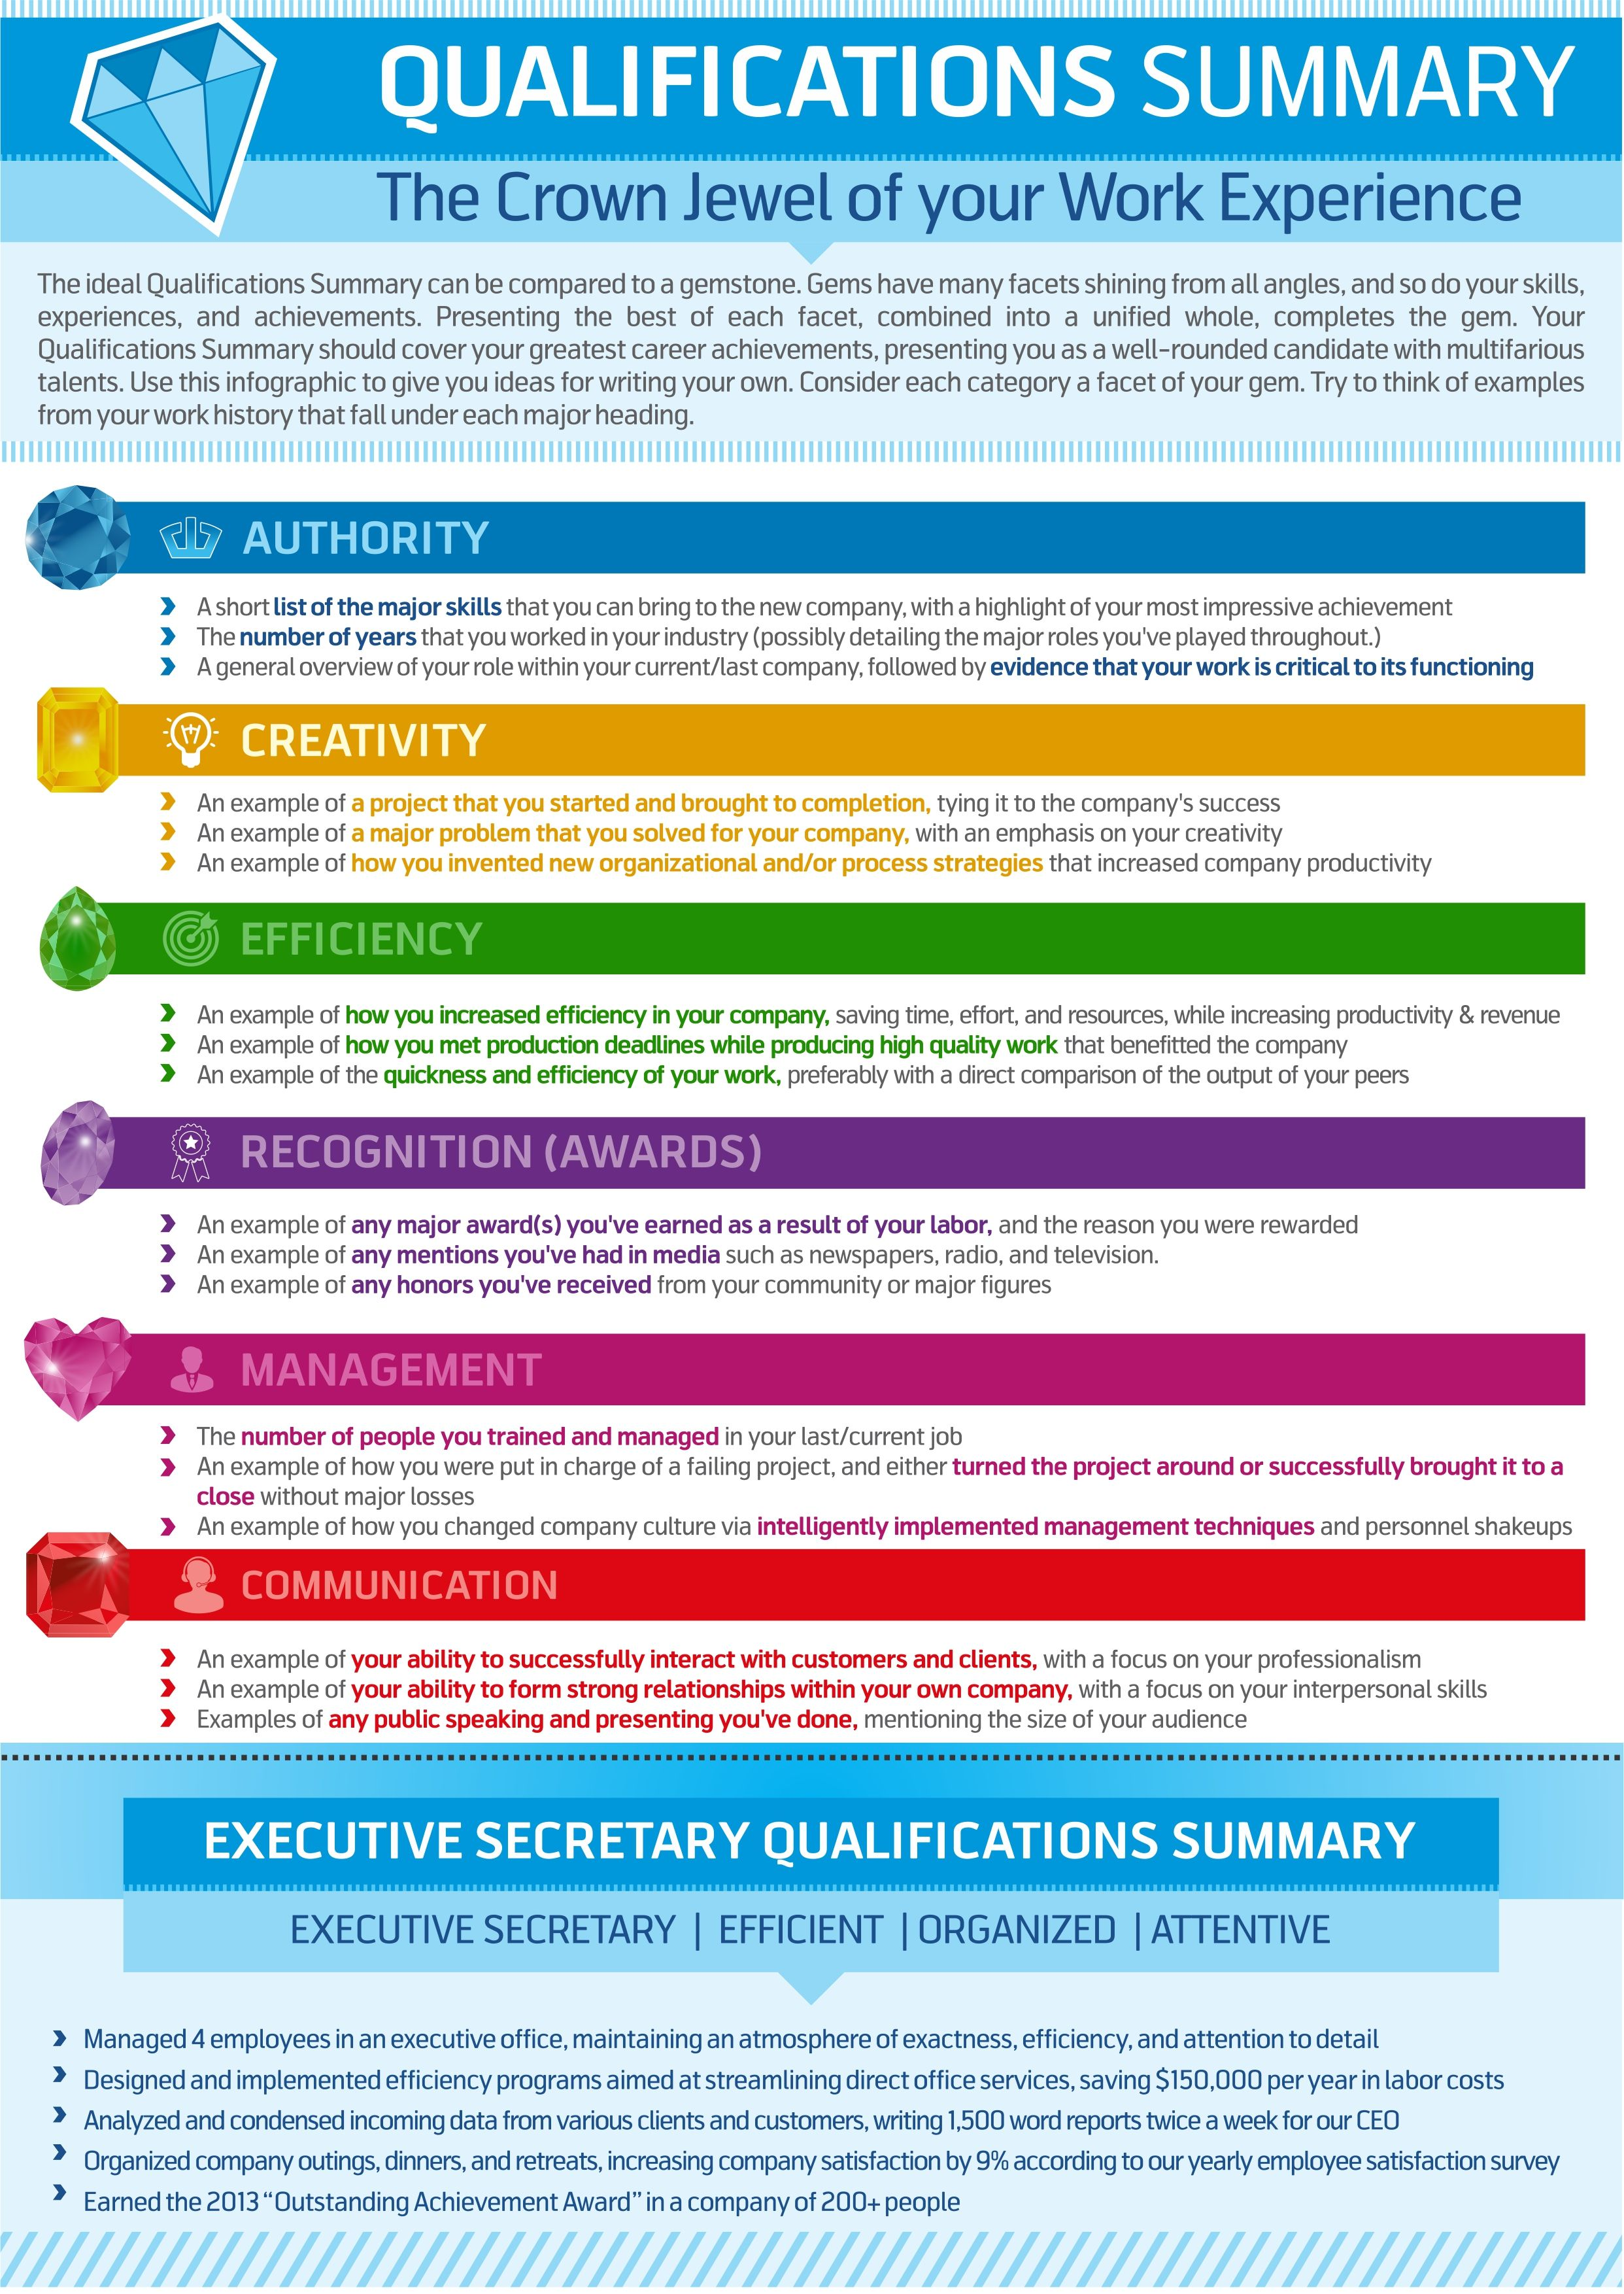 How to Write a Qualifications Summary Infographic  blogging  marketing  Resume writing